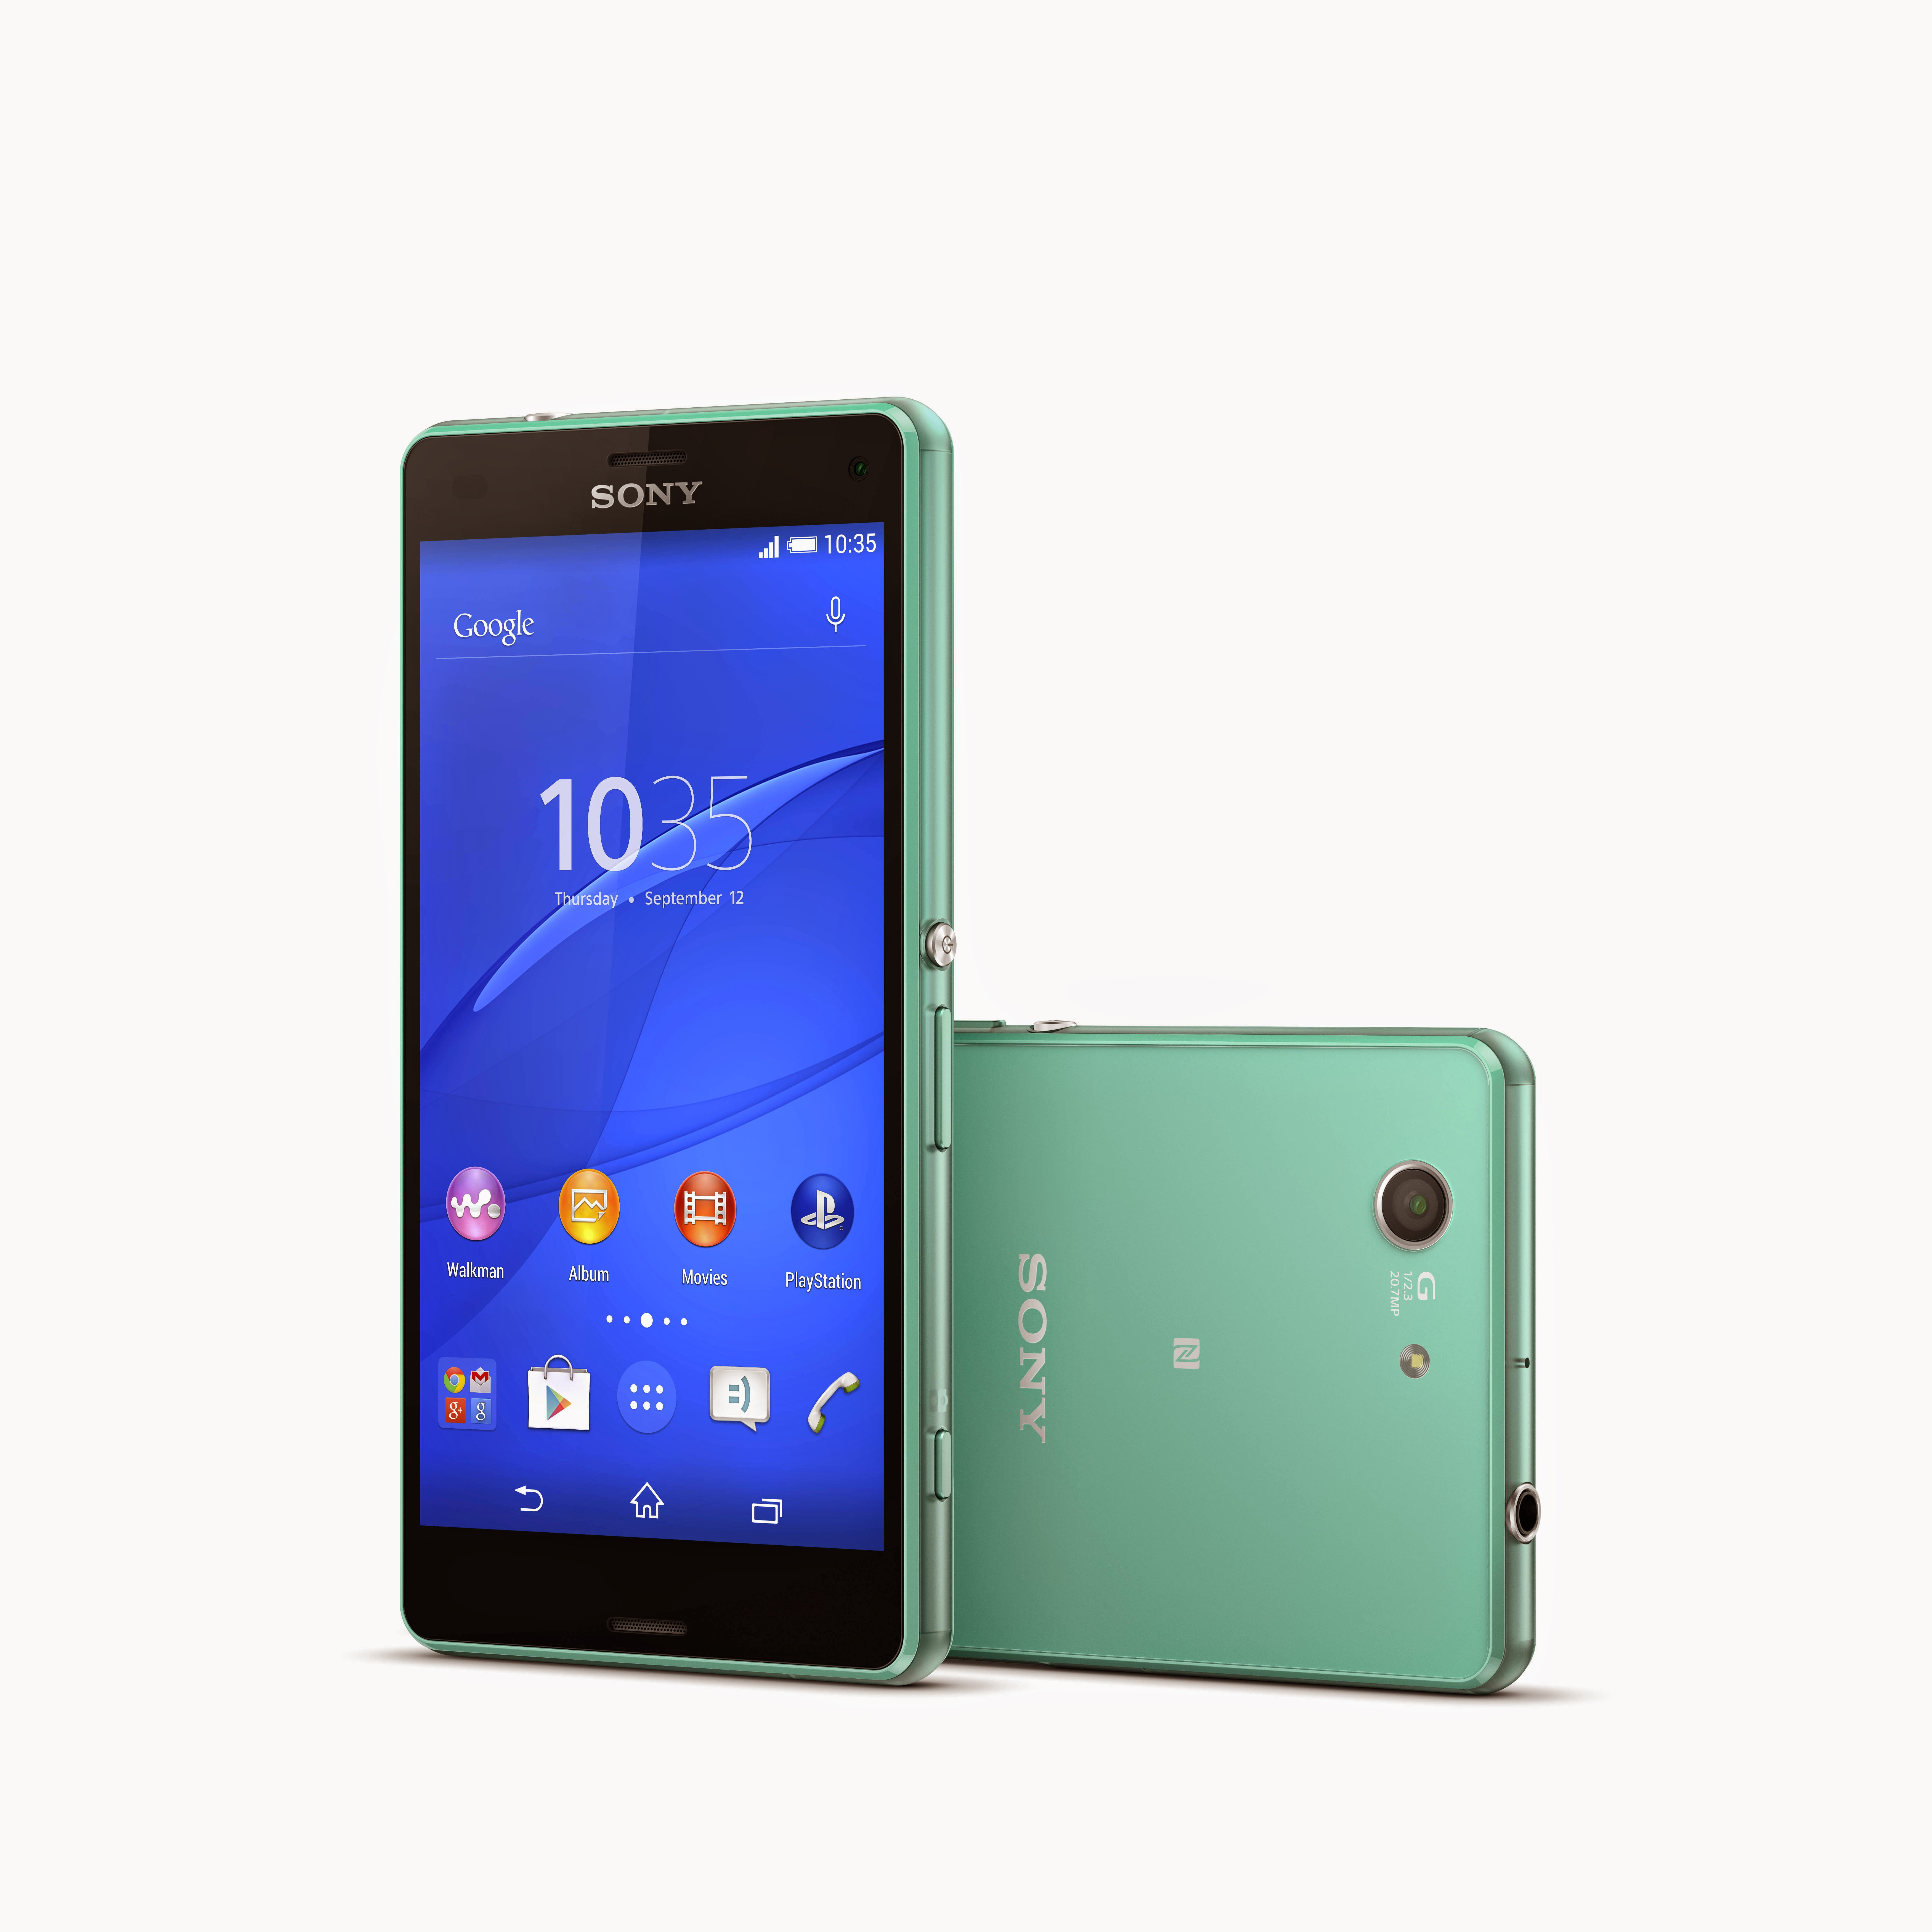 sony xperia z3 compact son prix stagne meilleur mobile. Black Bedroom Furniture Sets. Home Design Ideas